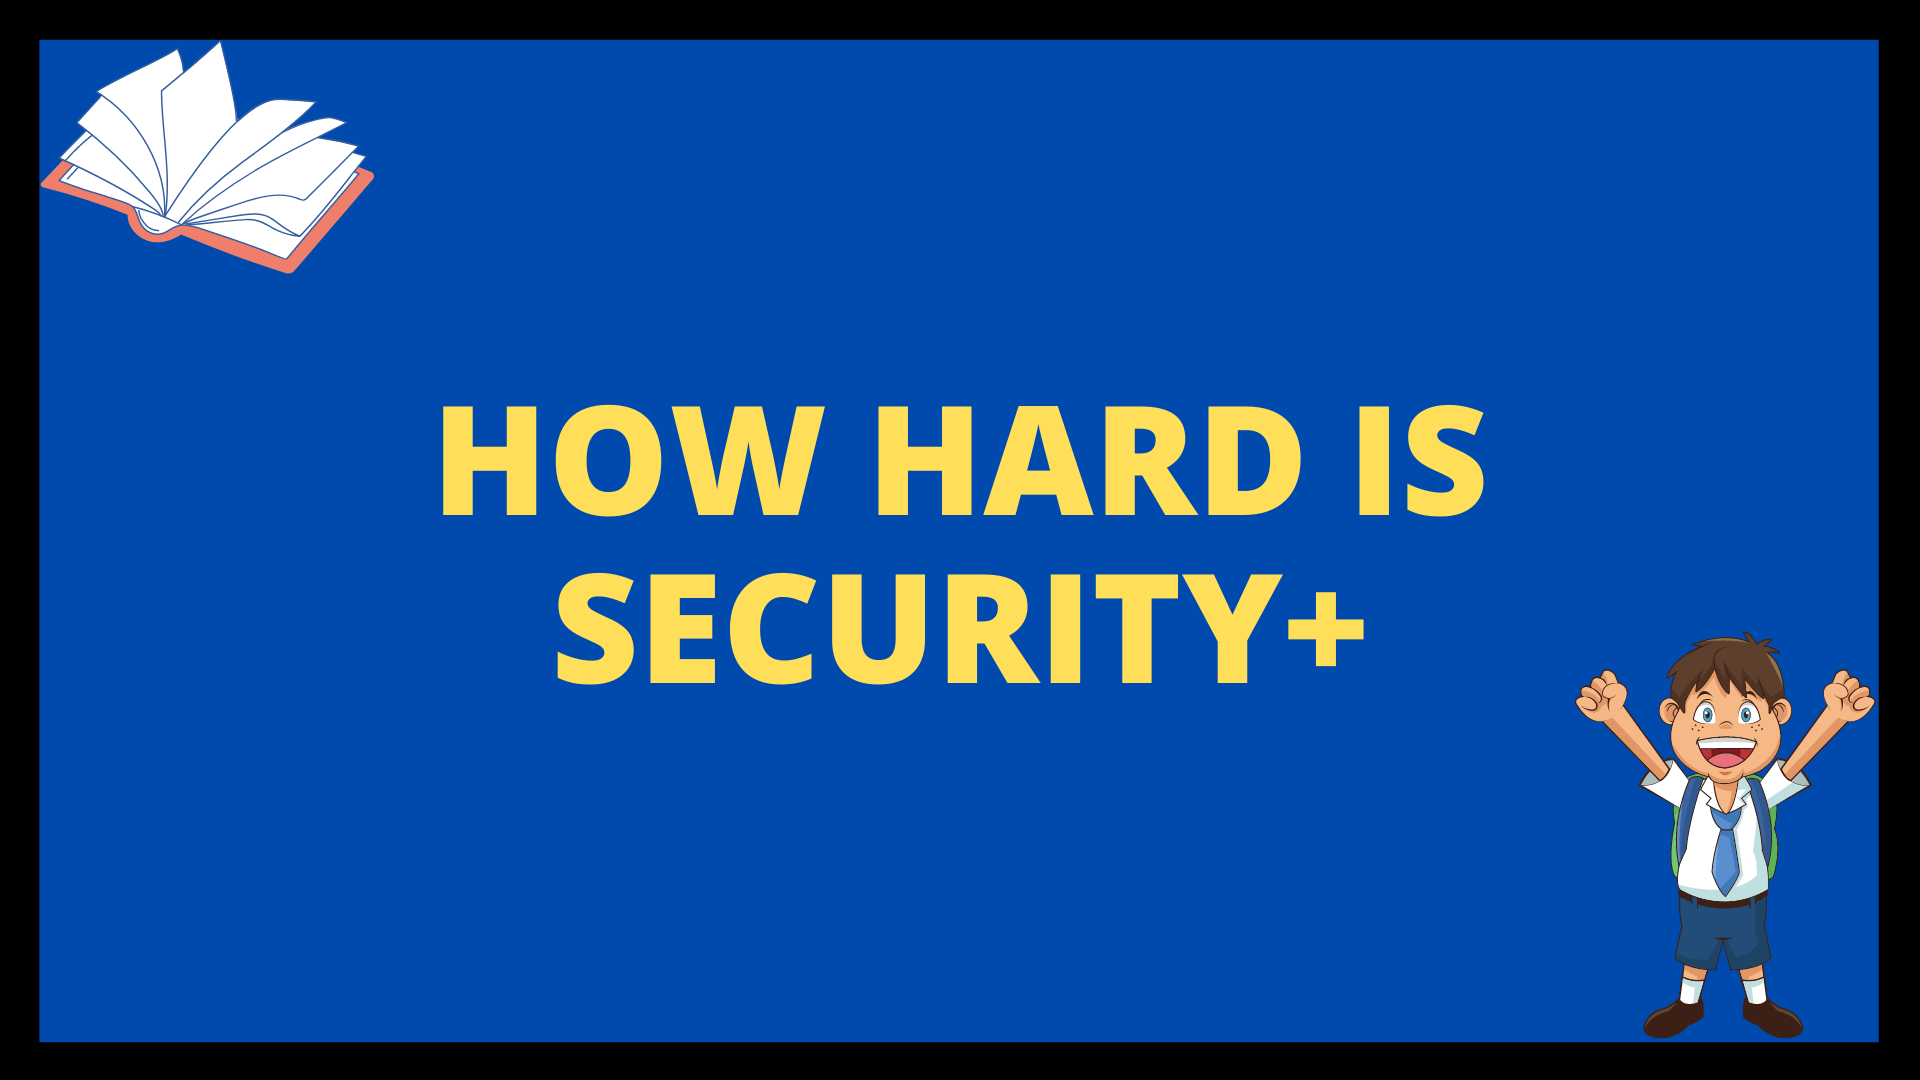 How Hard is Security+